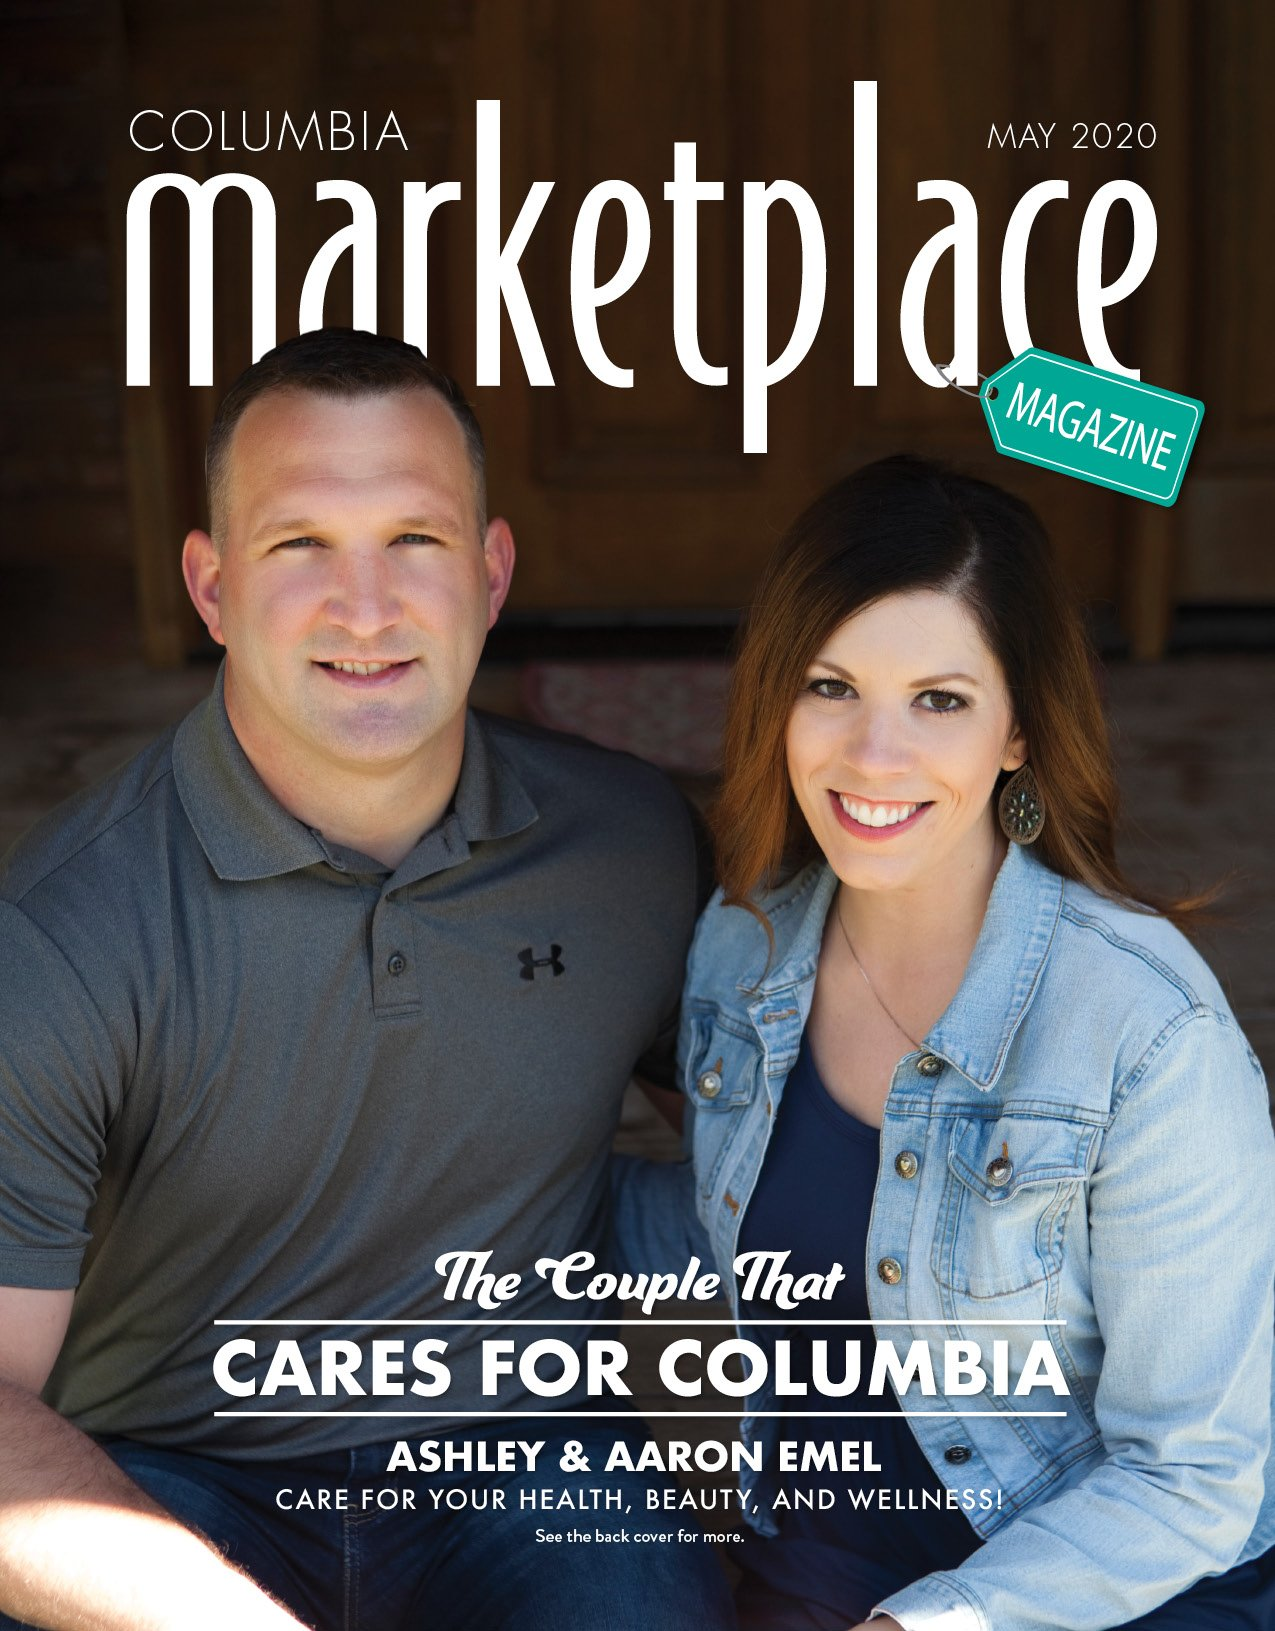 Marketplace Magazine by Modern Media Concepts May 2020 Edition Featuring Ashley and Aaron Emel Compass Chiropractic Wellness Columbia Missouri 1